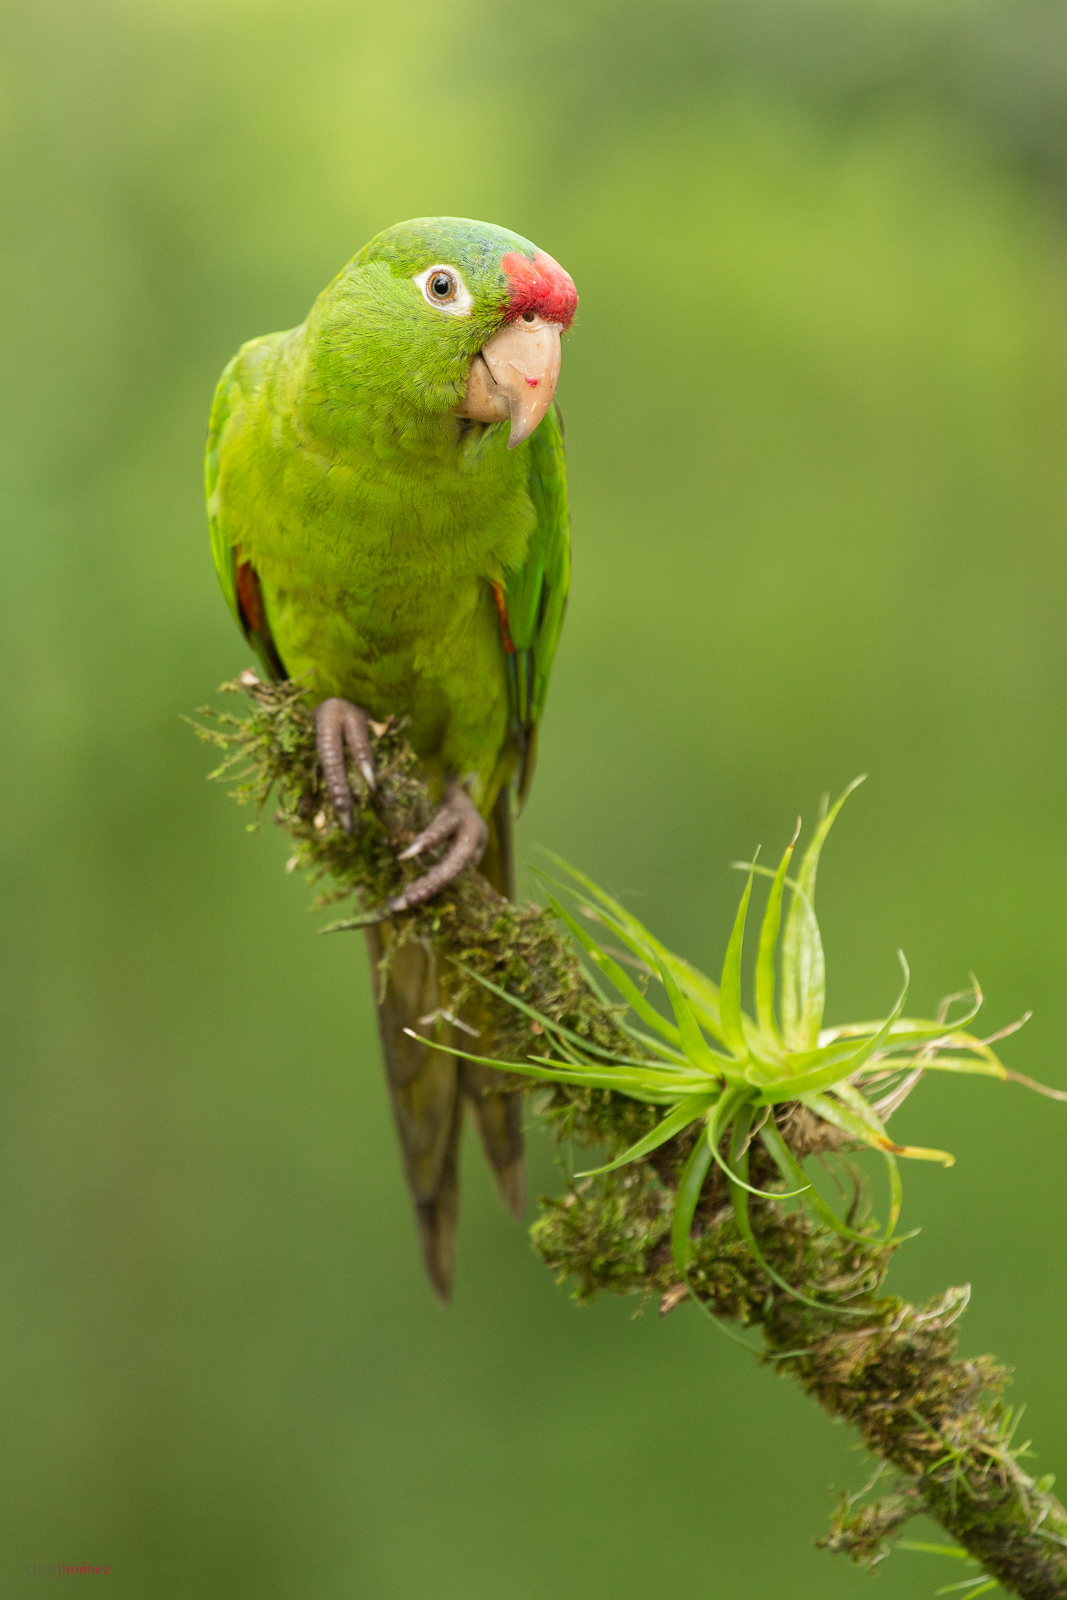 Crimson-fronted Parakeet (Psittacara finschi) perched on a branch at San Carlos, Costa Rica. For more visit http://www.chrisjimenez.net